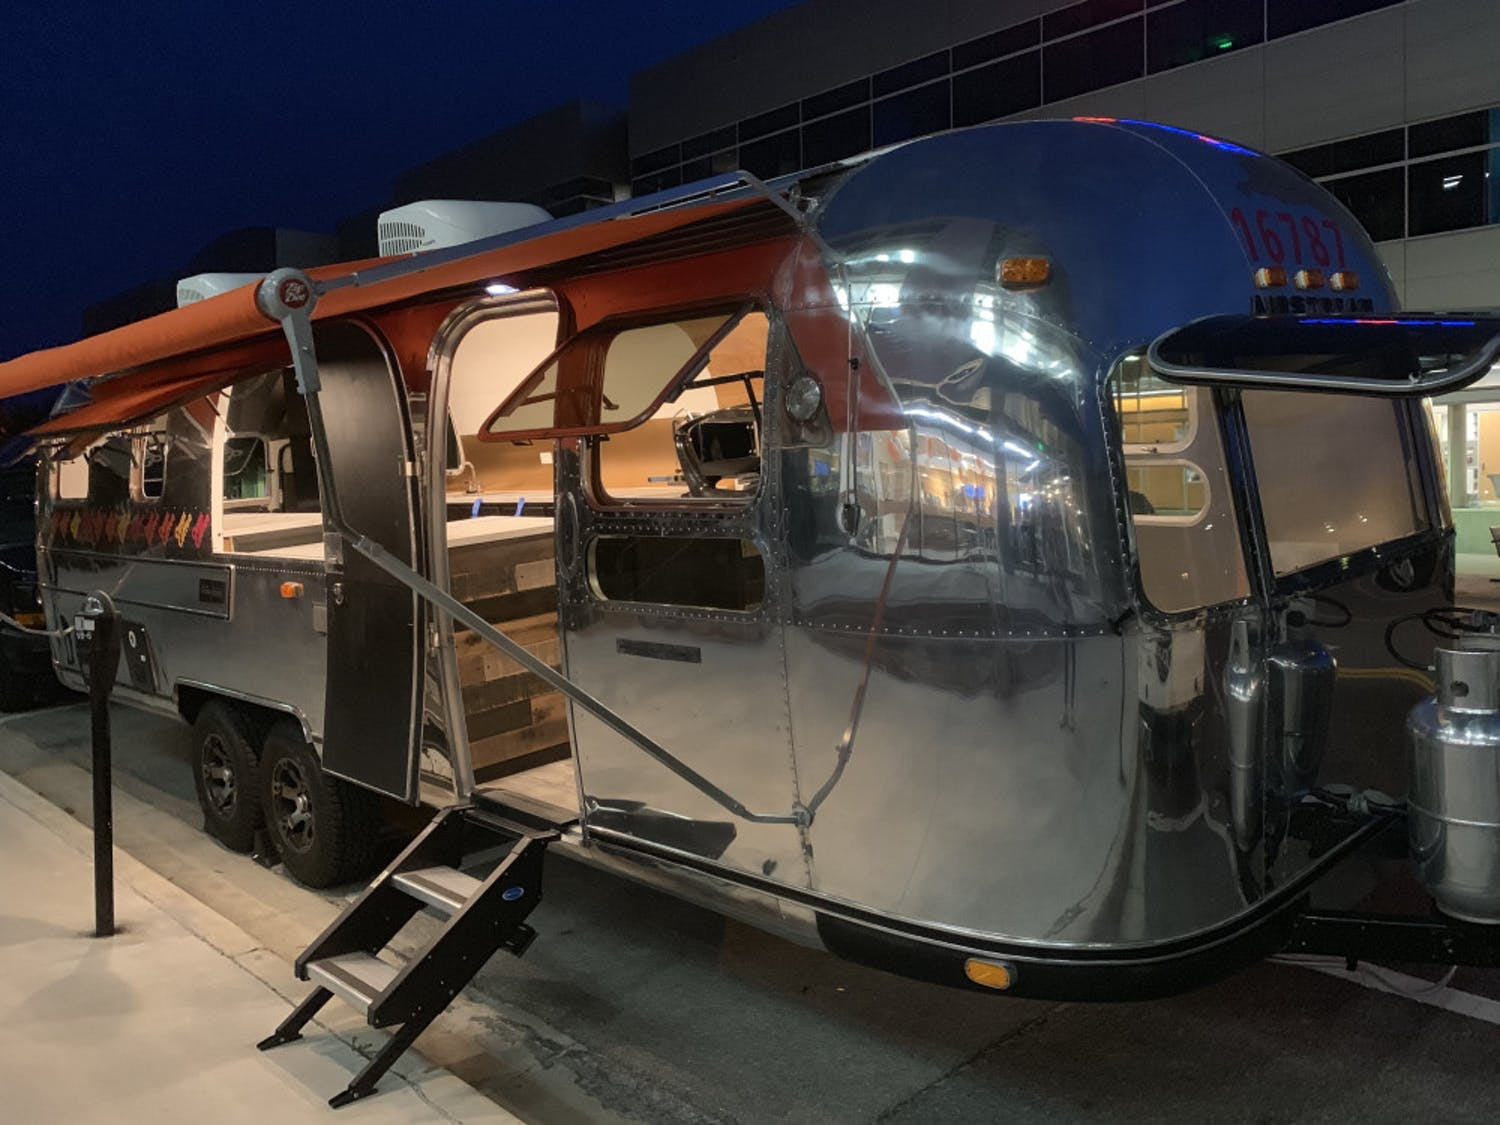 The Opus Coffee Airstream is displayed outside Gainesville's Innovation District Thursday night. It will be moved to 4th Ave Food Park and open for business this month.